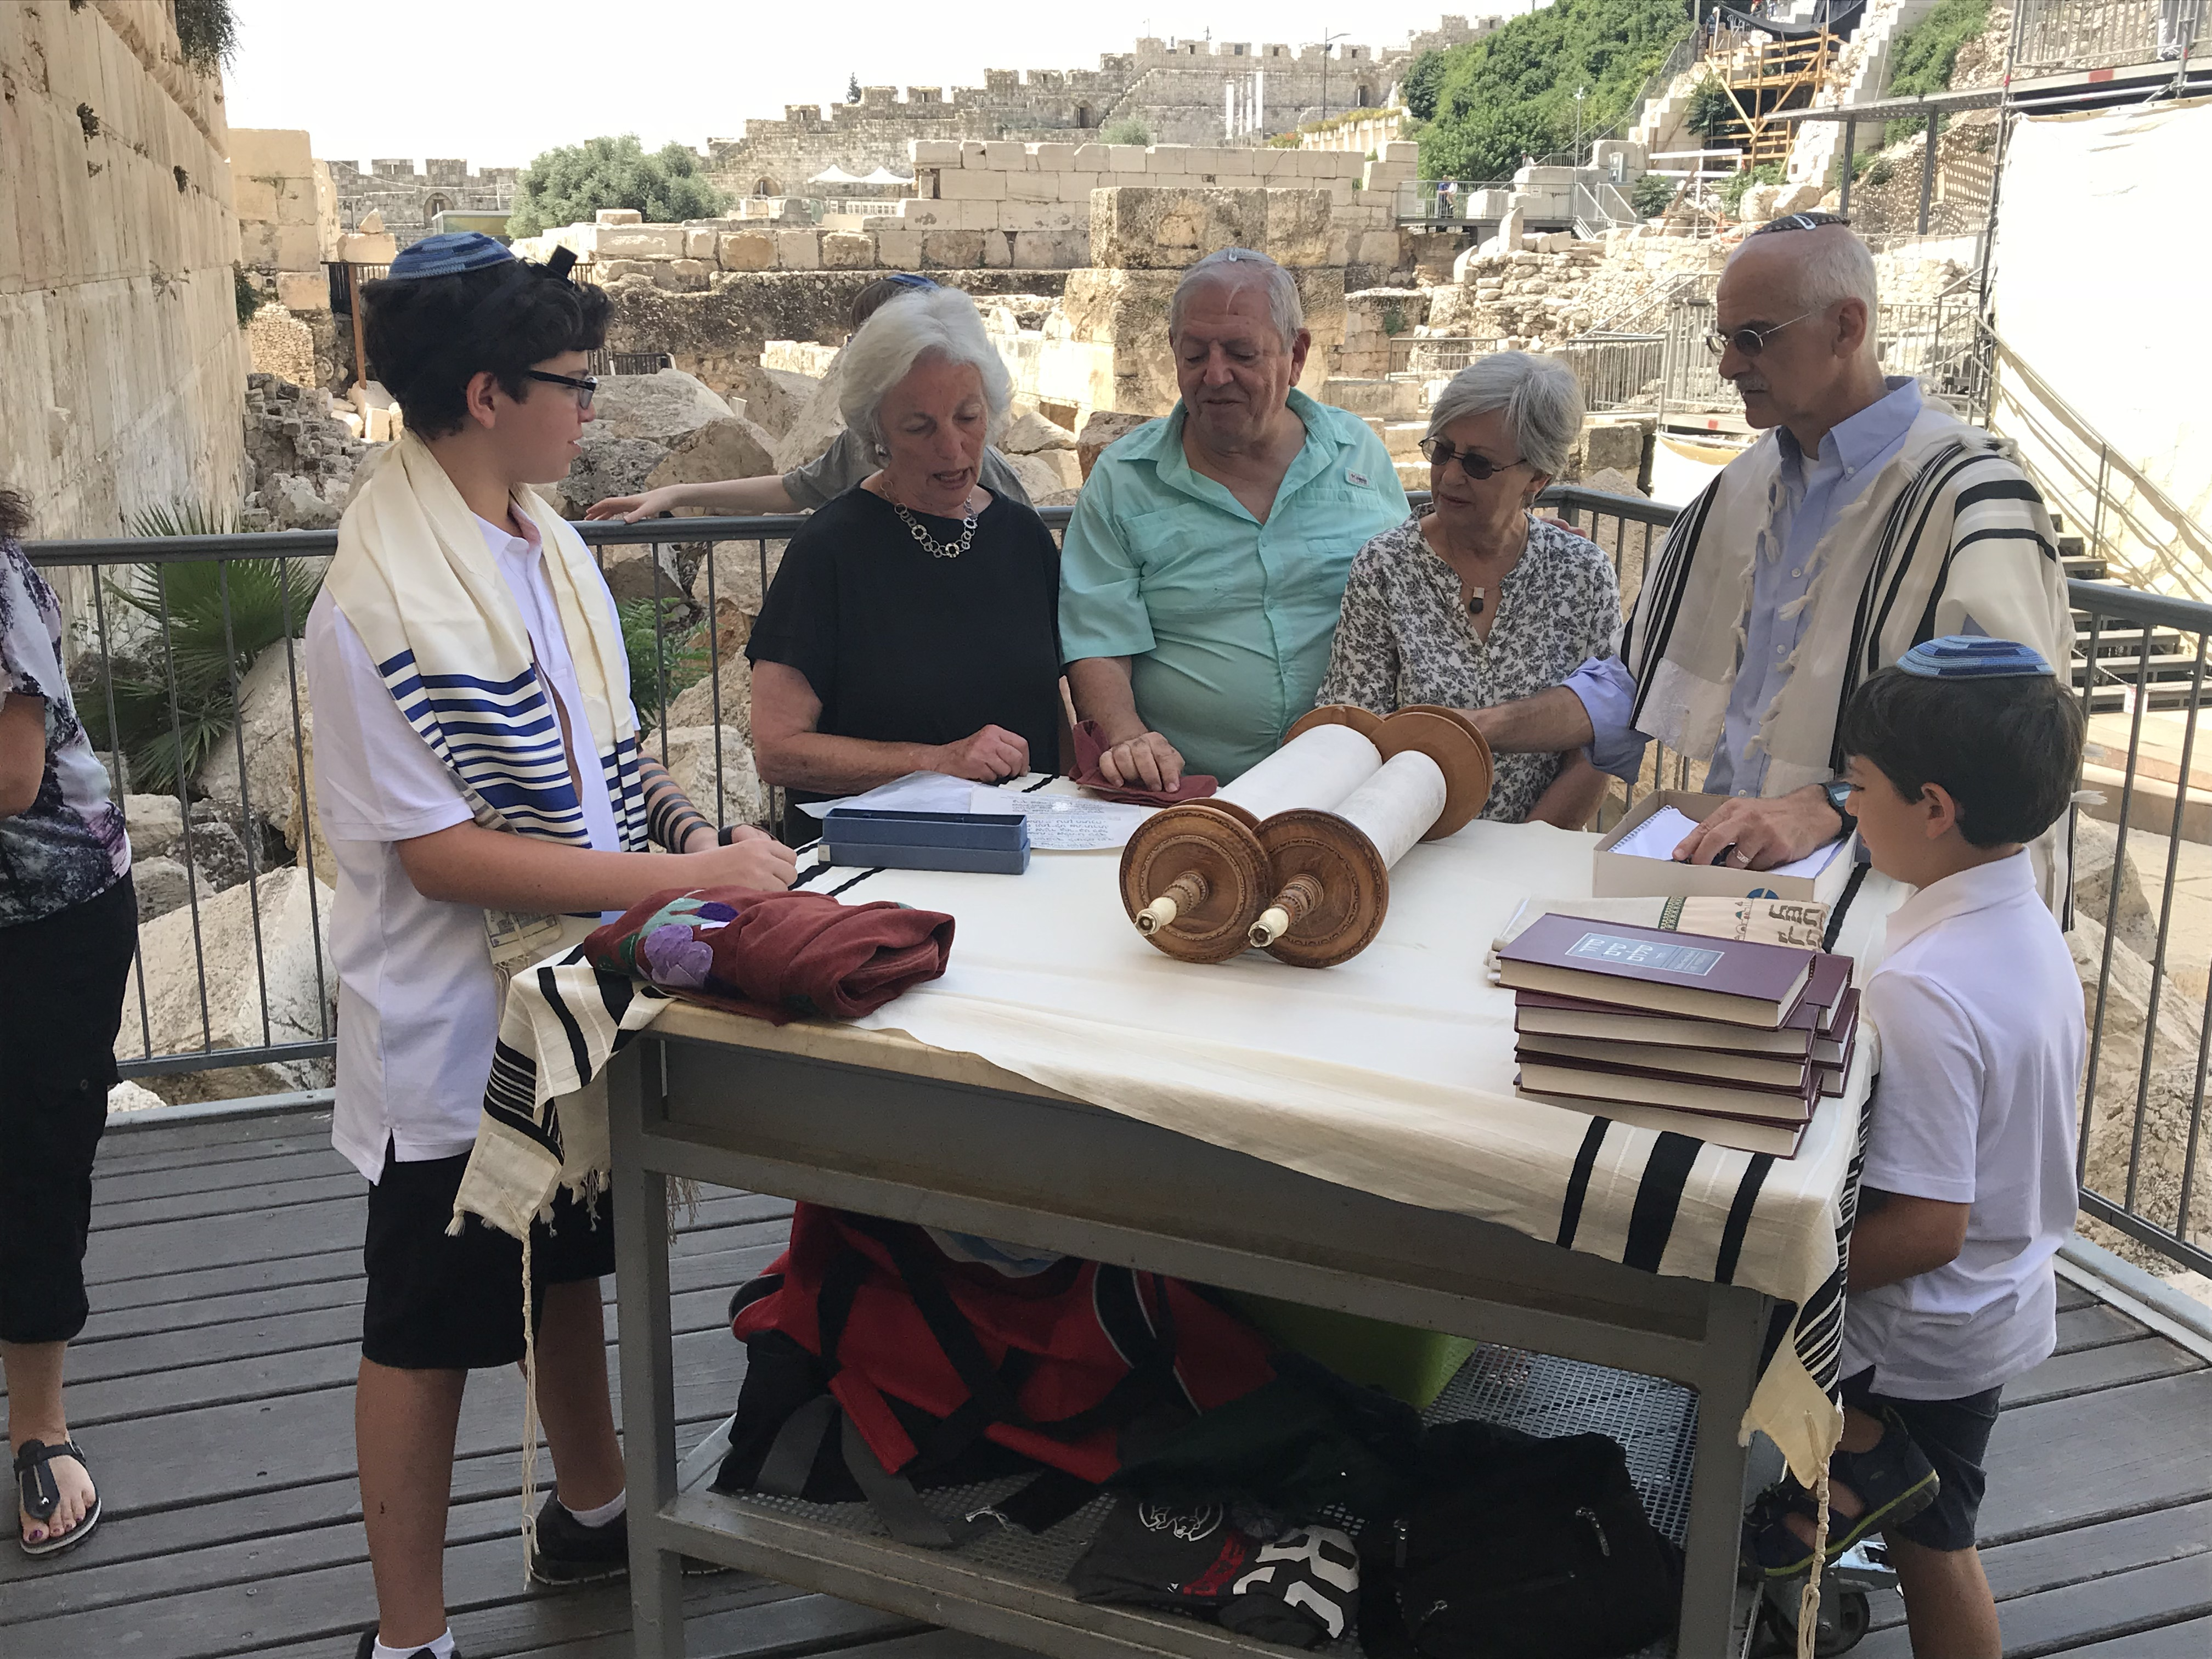 Our Top Ideas For Bar Bat Mitzvahs In Israel